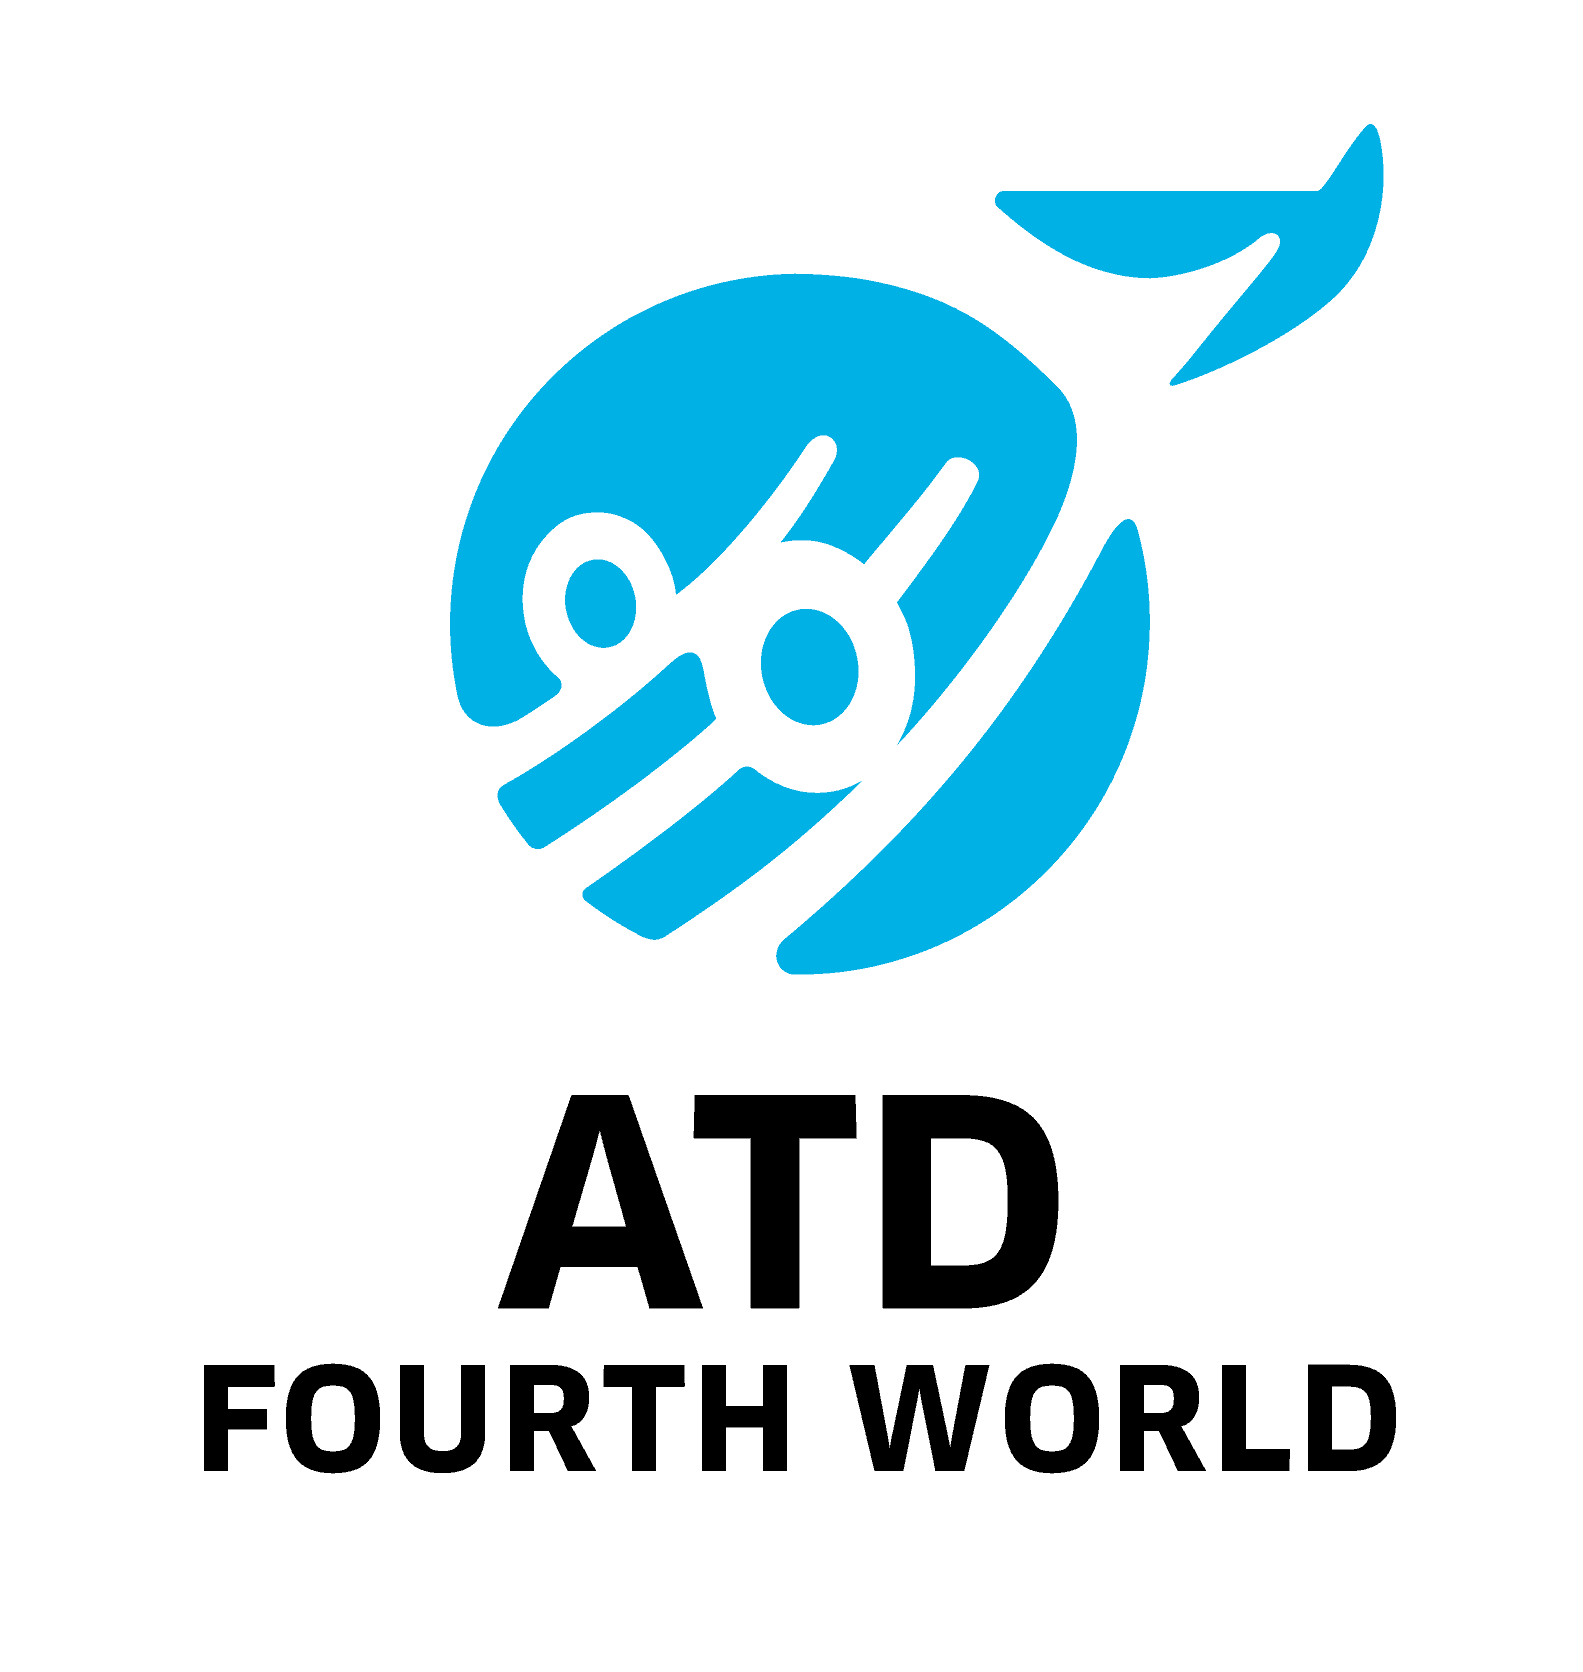 Logo de ATD Fourth World - All Together in Dignity